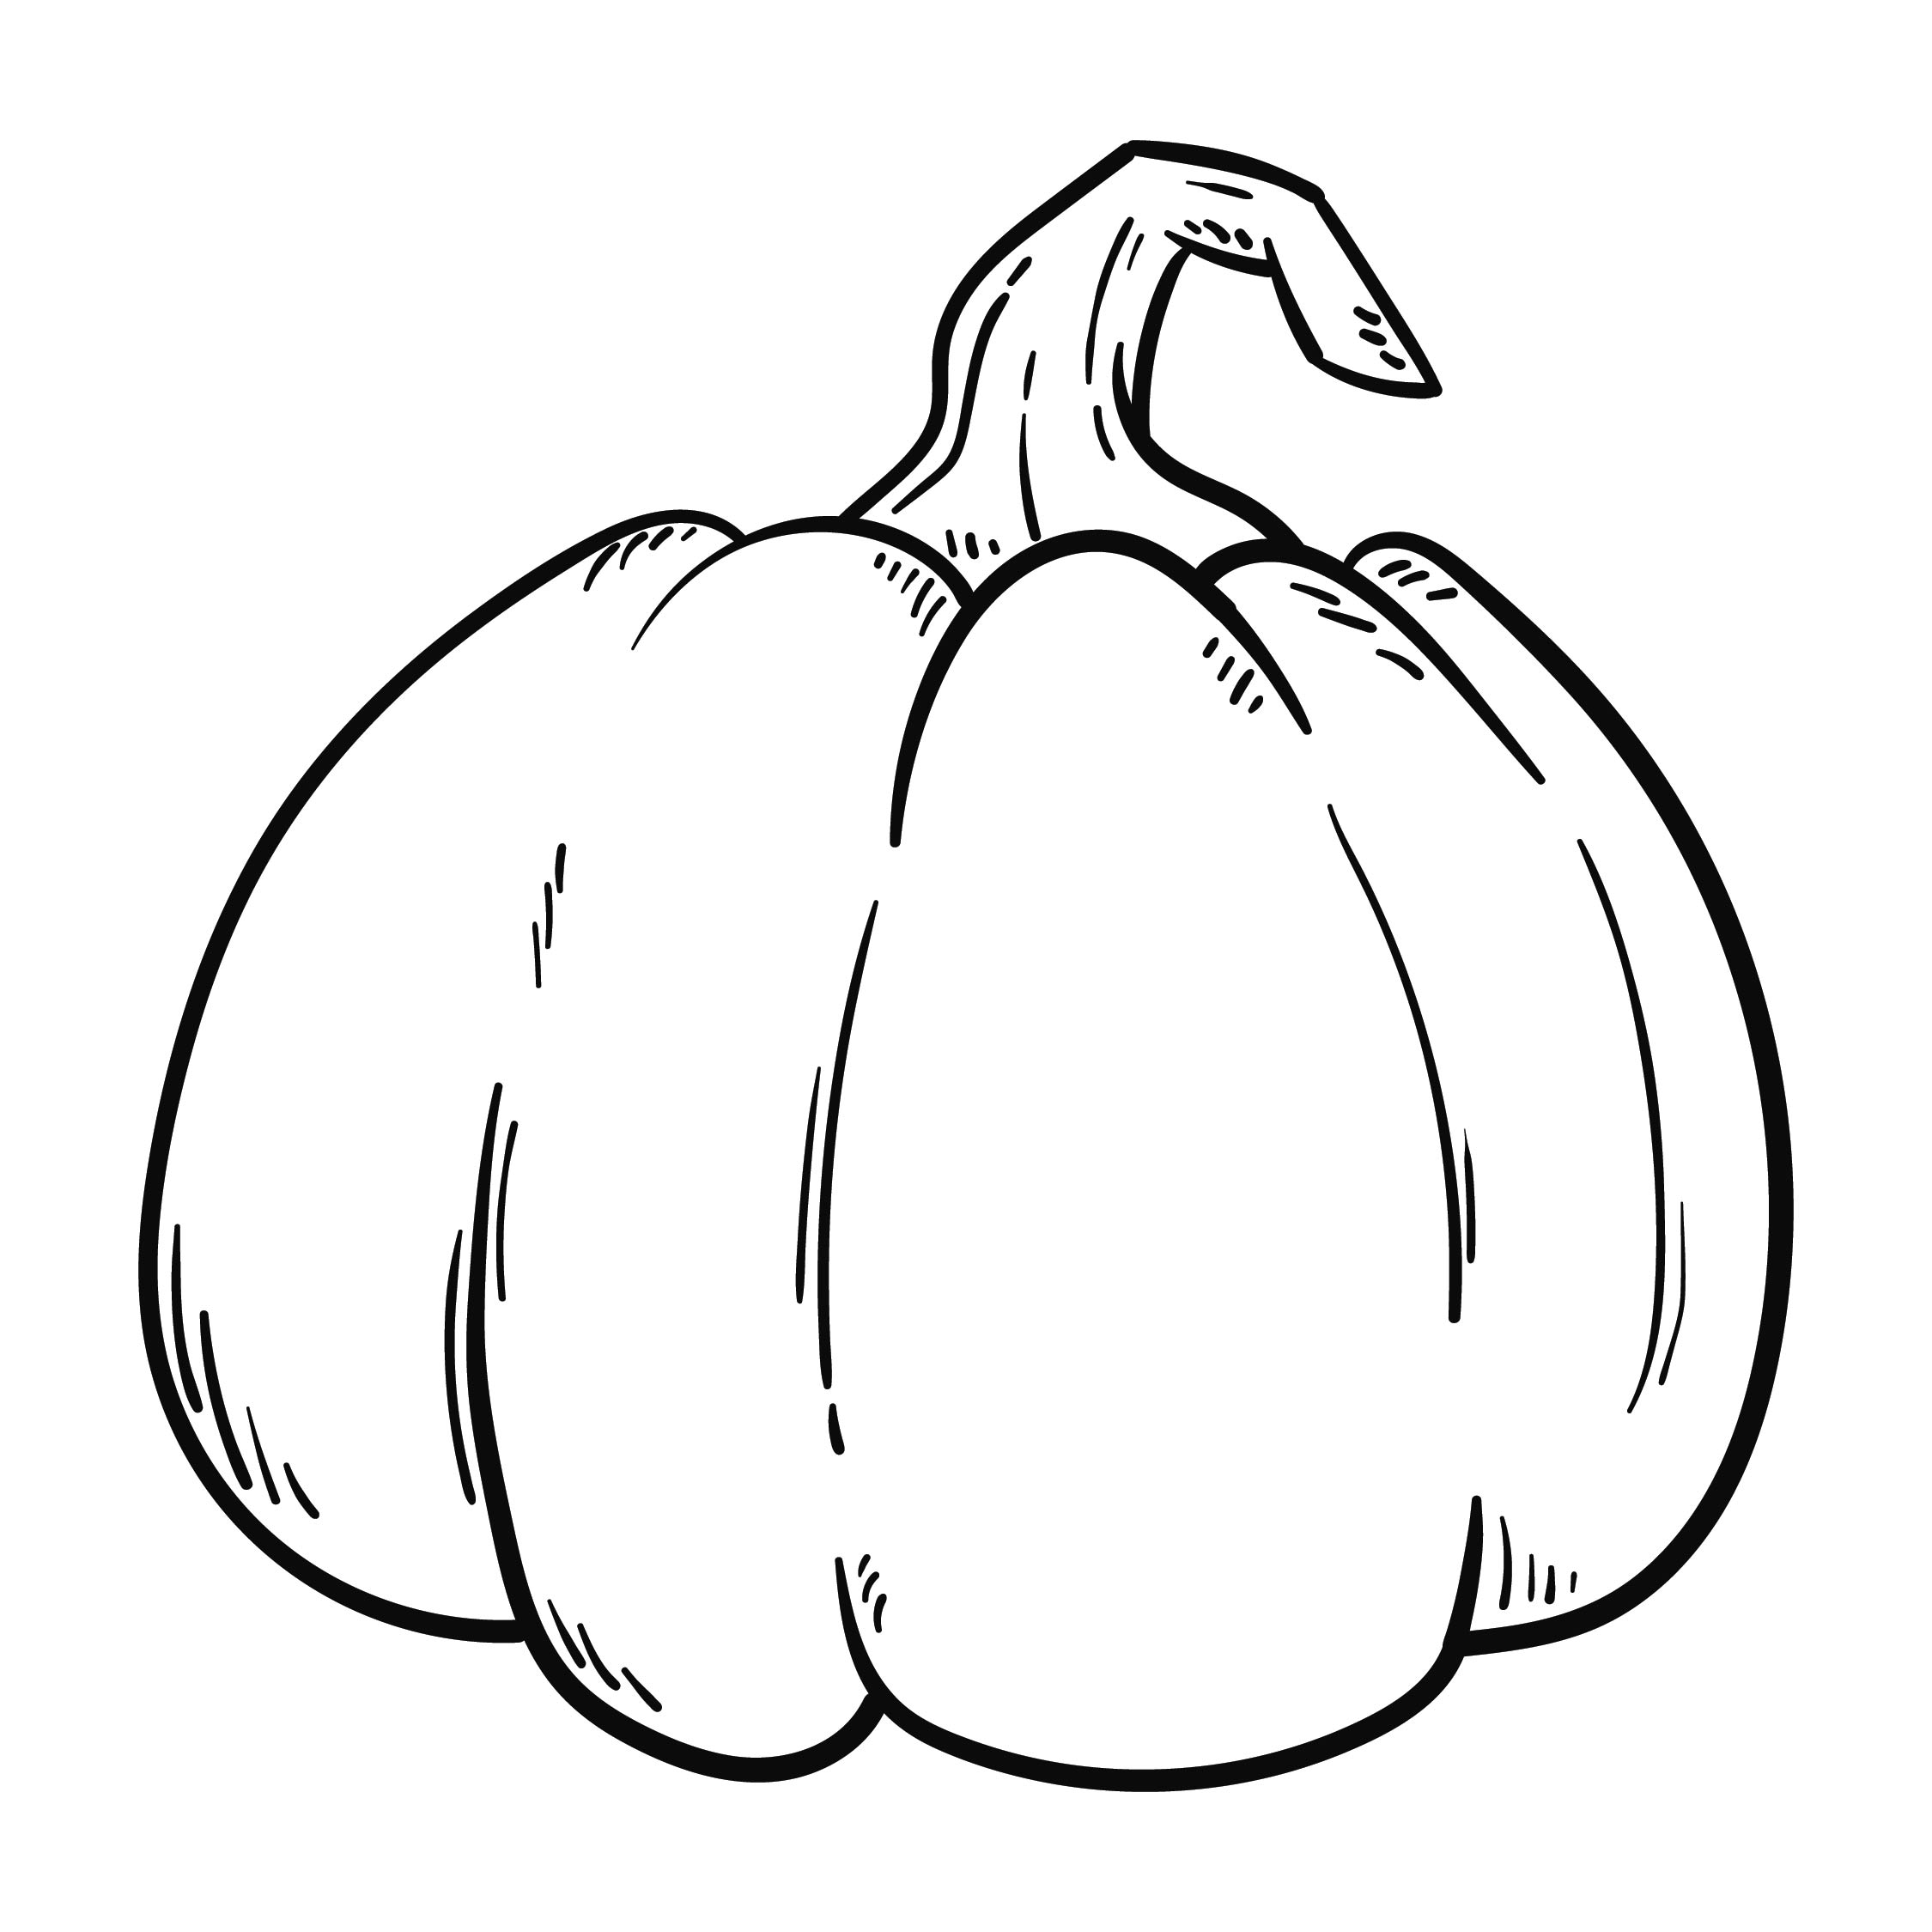 outline of pumpkin printable 5 best images of free halloween printable pumpkins outline pumpkin outline of printable